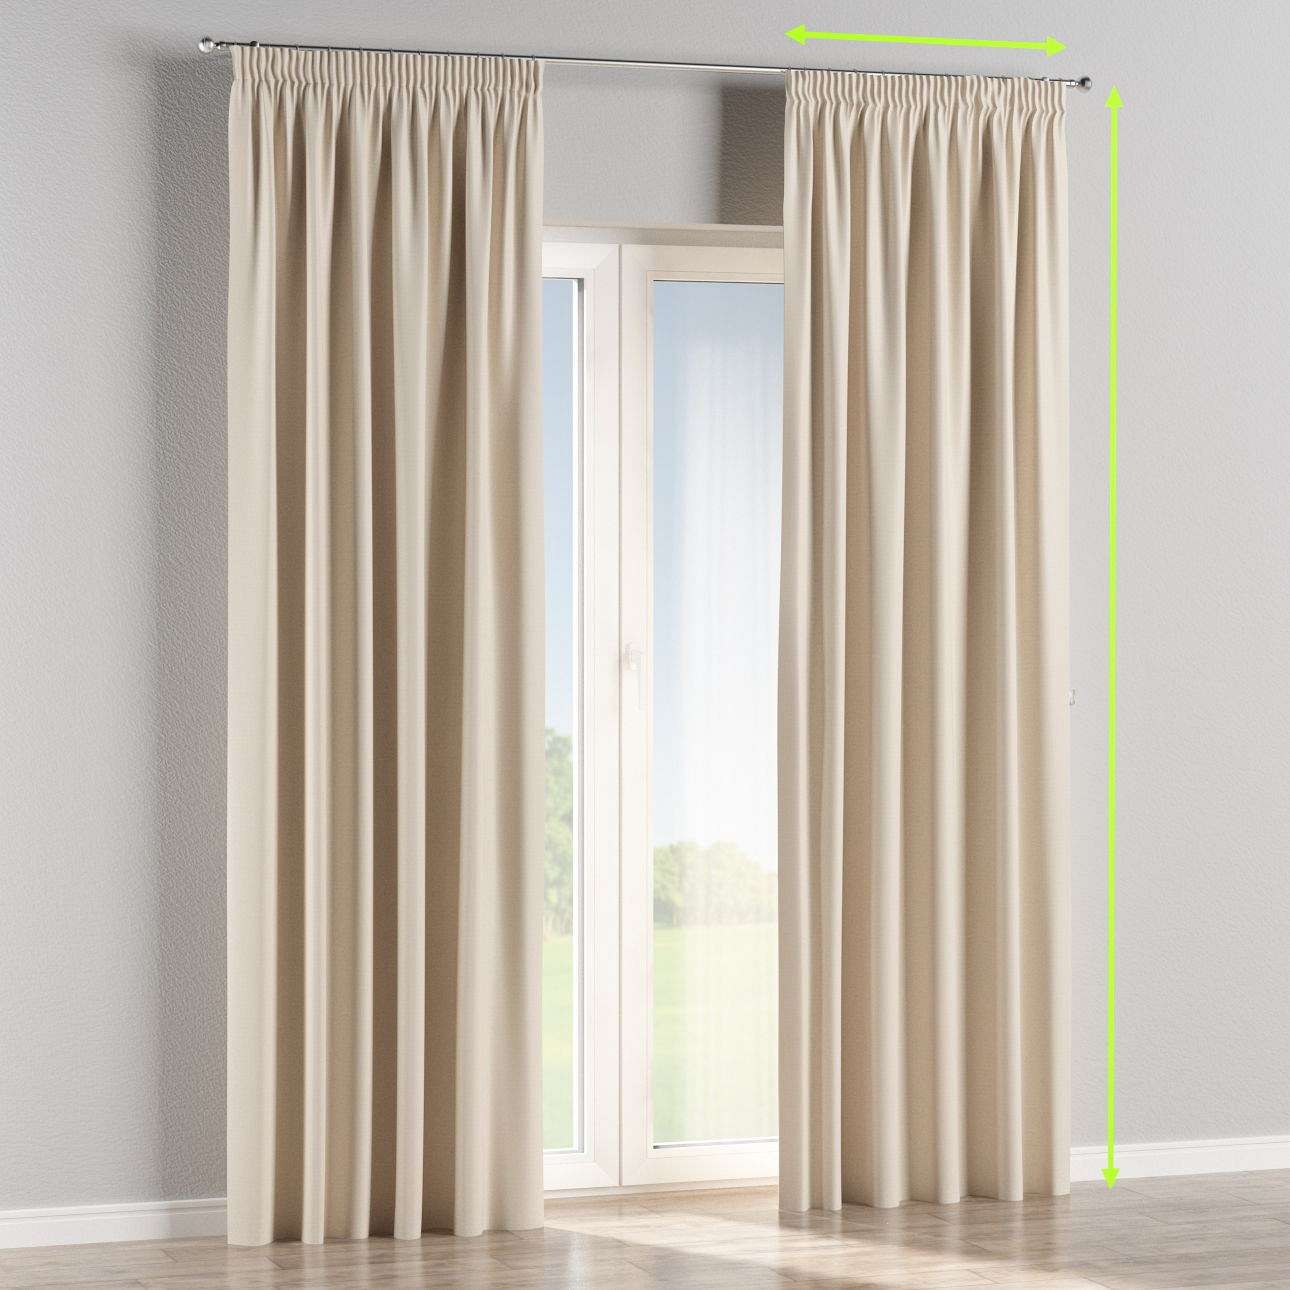 Pencil pleat curtains in collection Blackout, fabric: 269-66